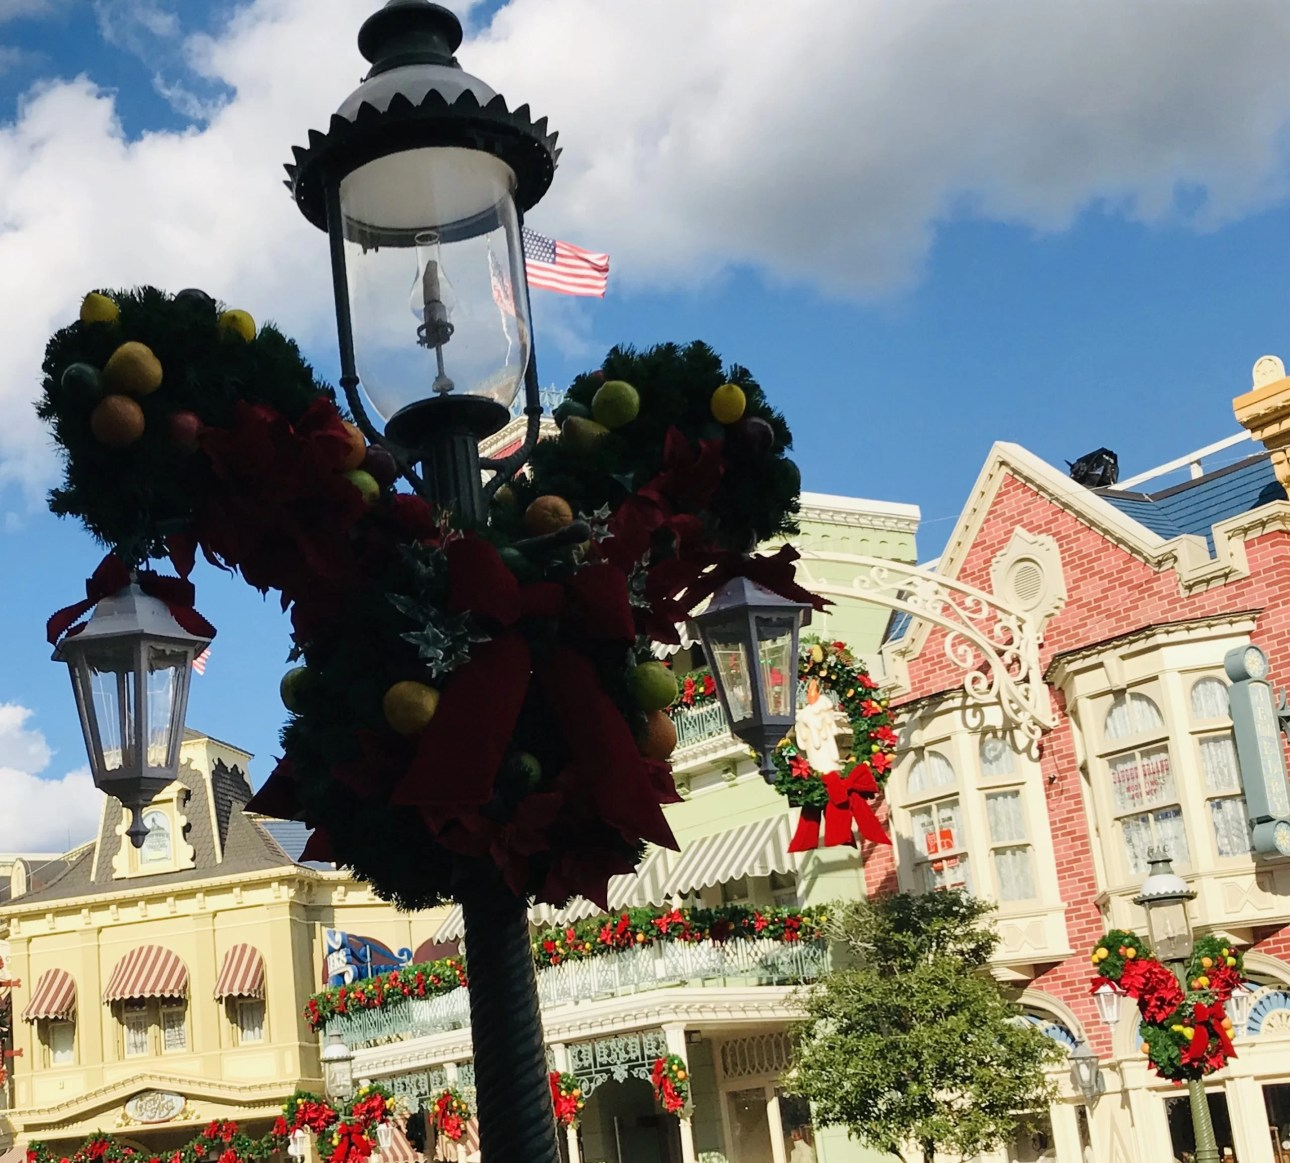 Mickey Mouse Christmas lamp posts in Walt Disney World